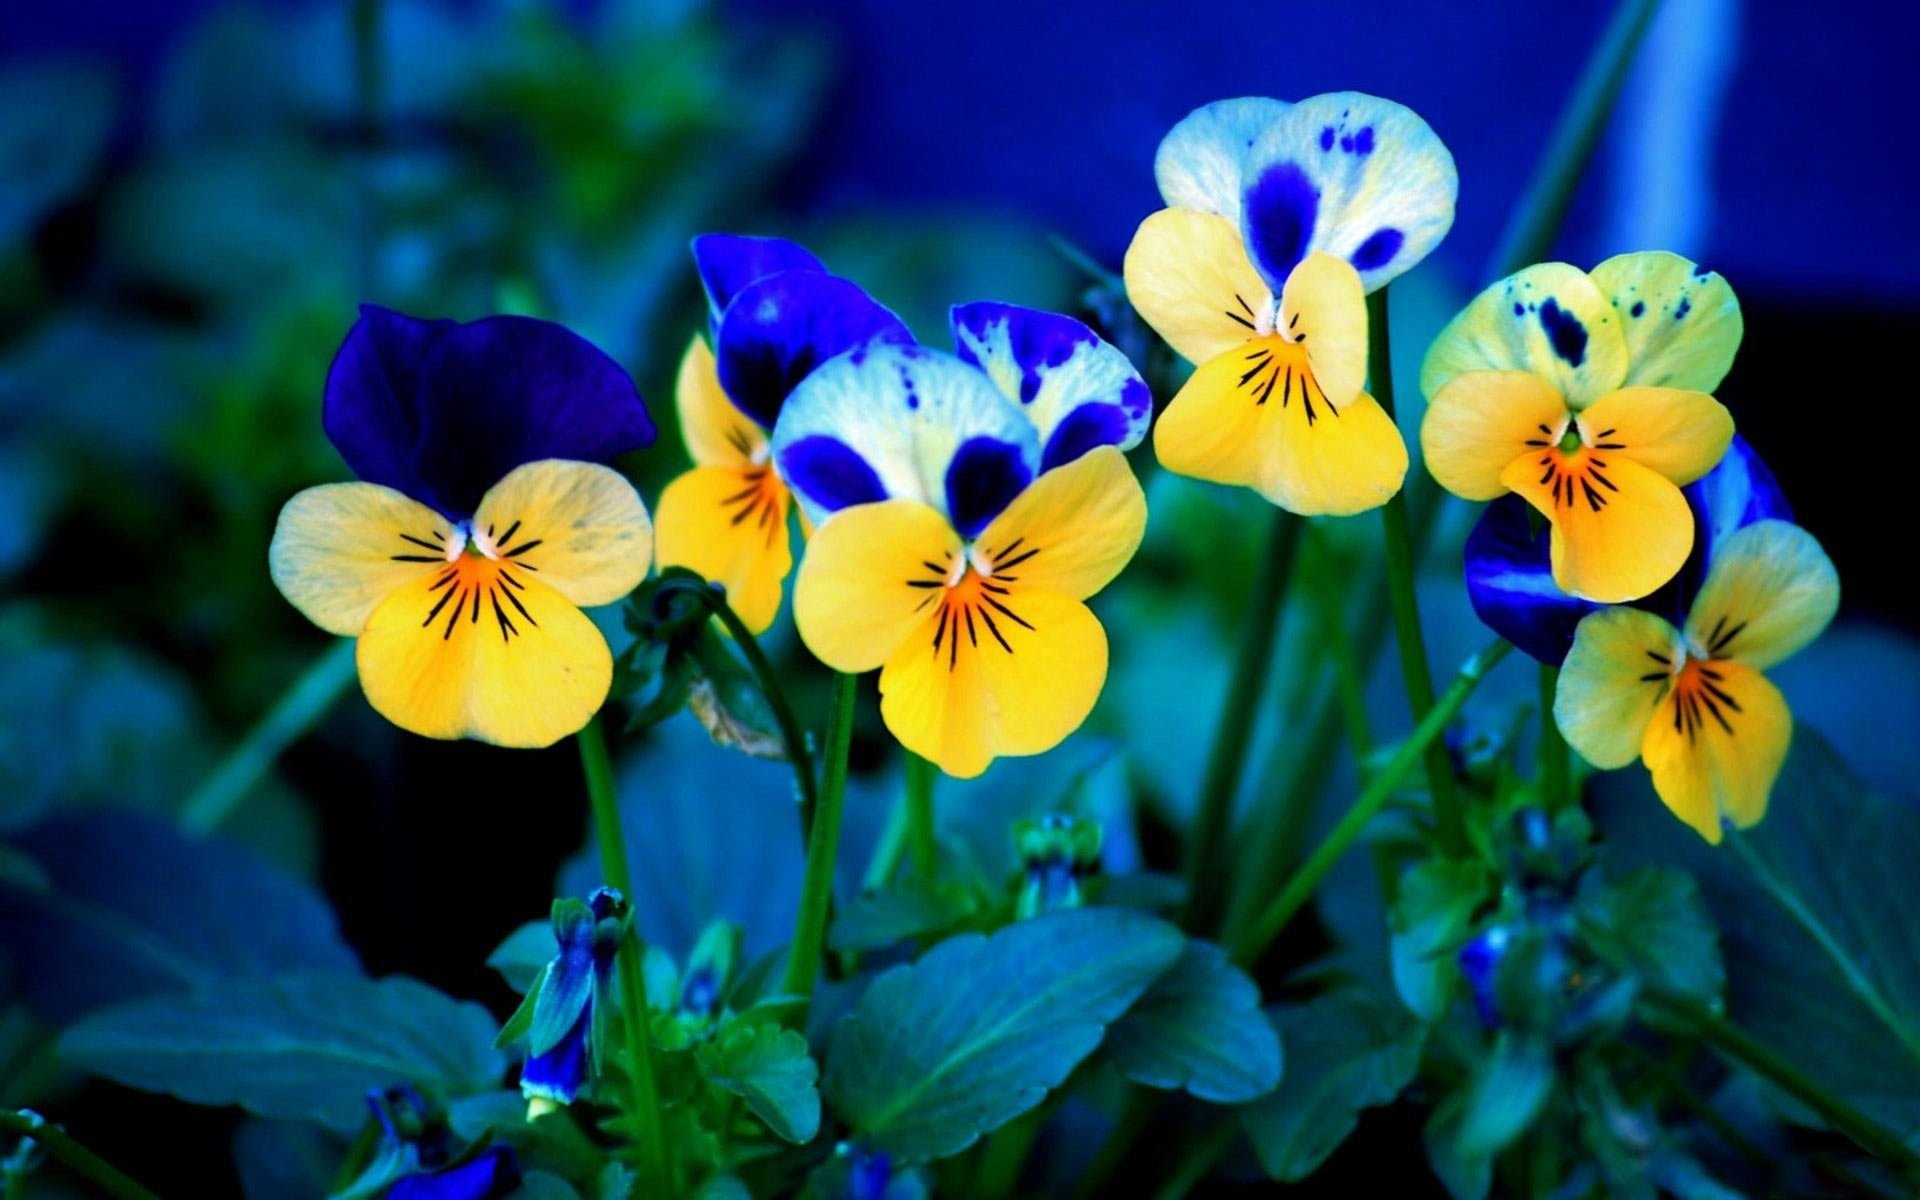 Blue Yellow Flower 1920x1200 - Blue Yellow Flower 1920x1200